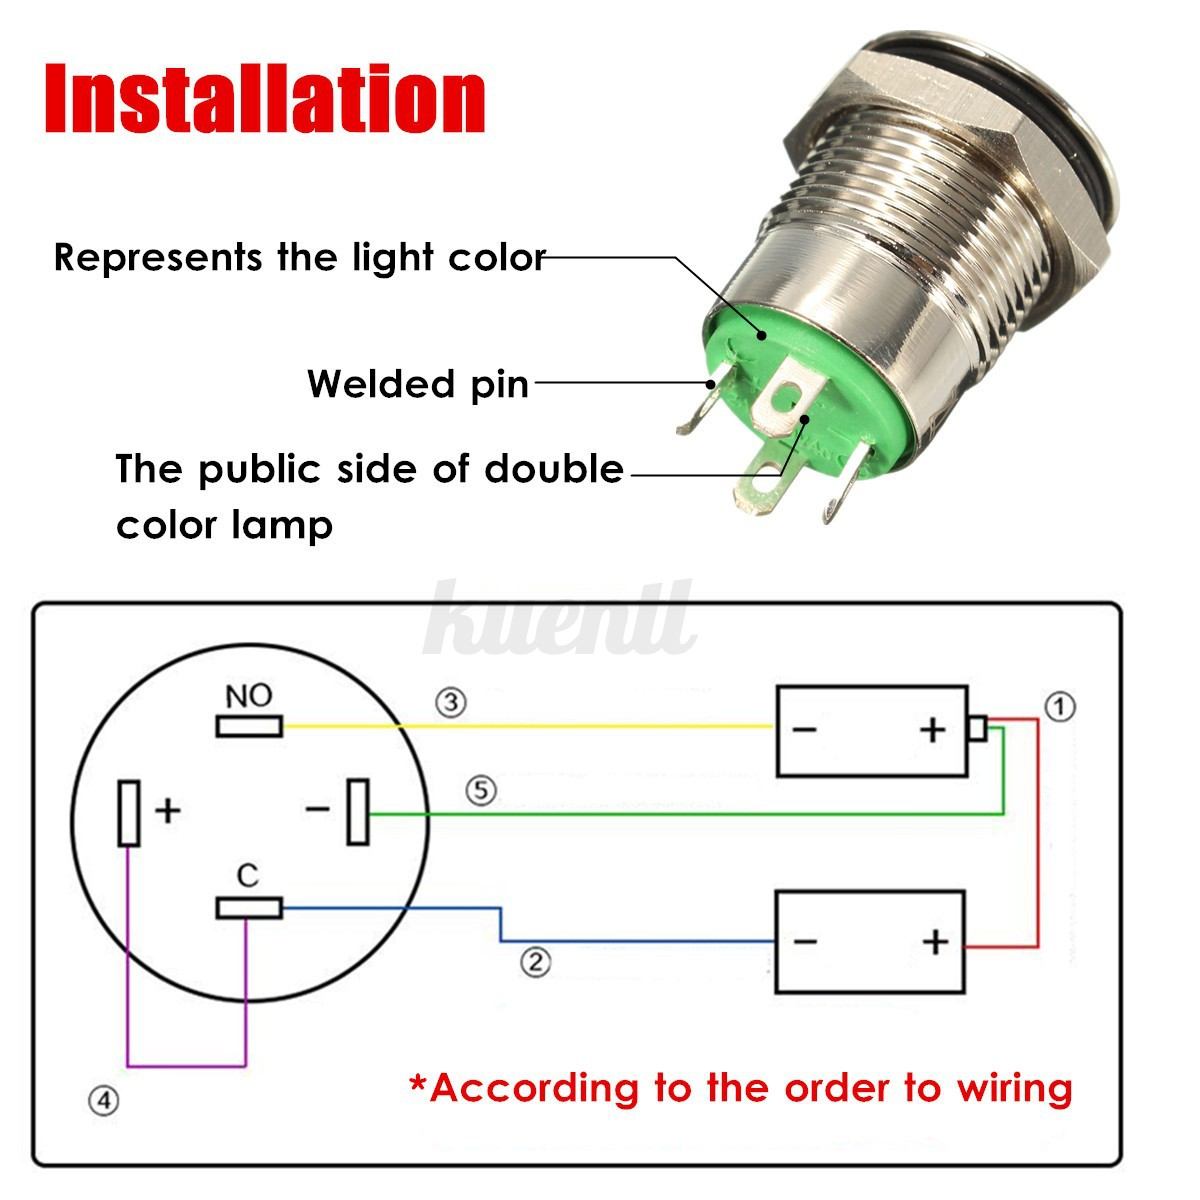 Momentary 4 Prong Switch Wiring Diagram - Data Wiring Diagram on rocker switch diagram, 4 pin telephone jack wiring, atv winch wiring diagram, 4 pin wiring harness, 4 pin switch wire, 4 pin toggle switch, 4 pin lift switch, 4 pin fan diagram, solenoid wiring diagram,